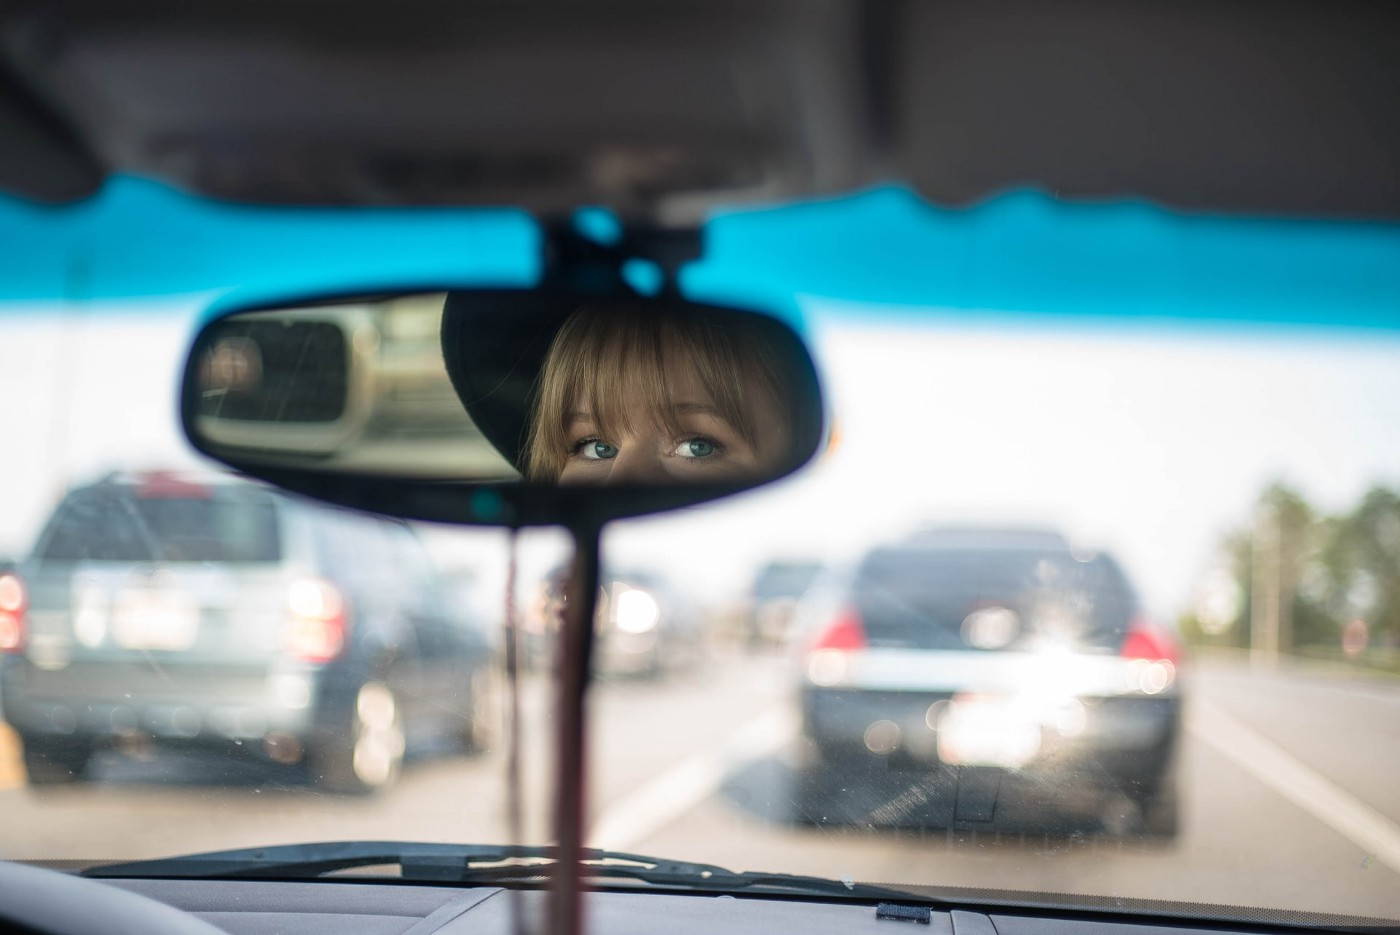 Woman looks at viewer through rear view mirror in car on crowded road